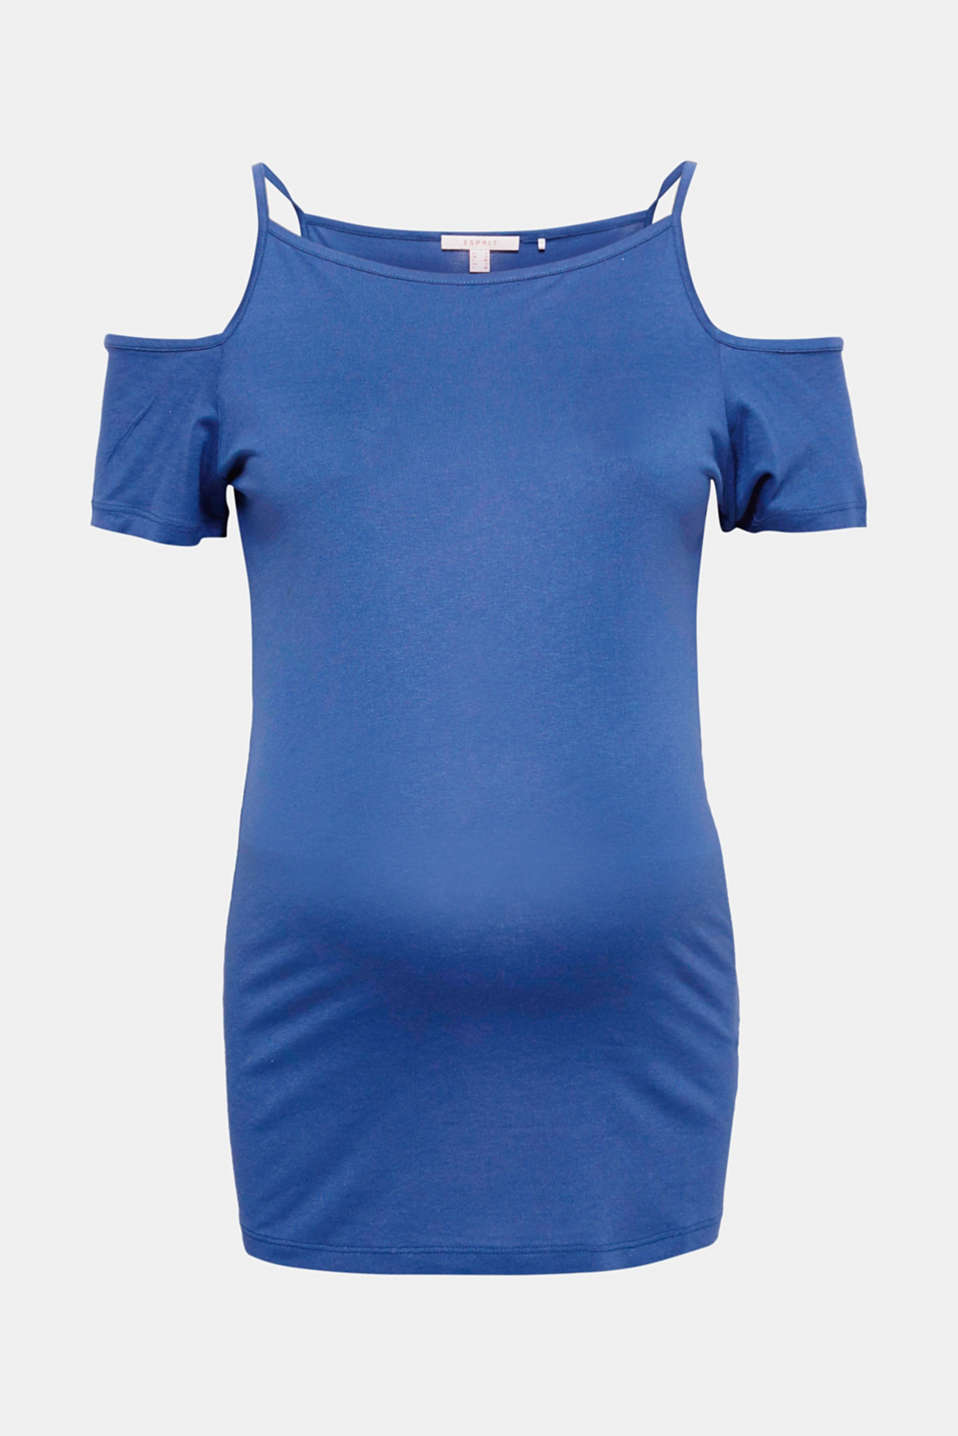 Cold-shoulder top in comfy jersey, LCAZURE BLUE, detail image number 7